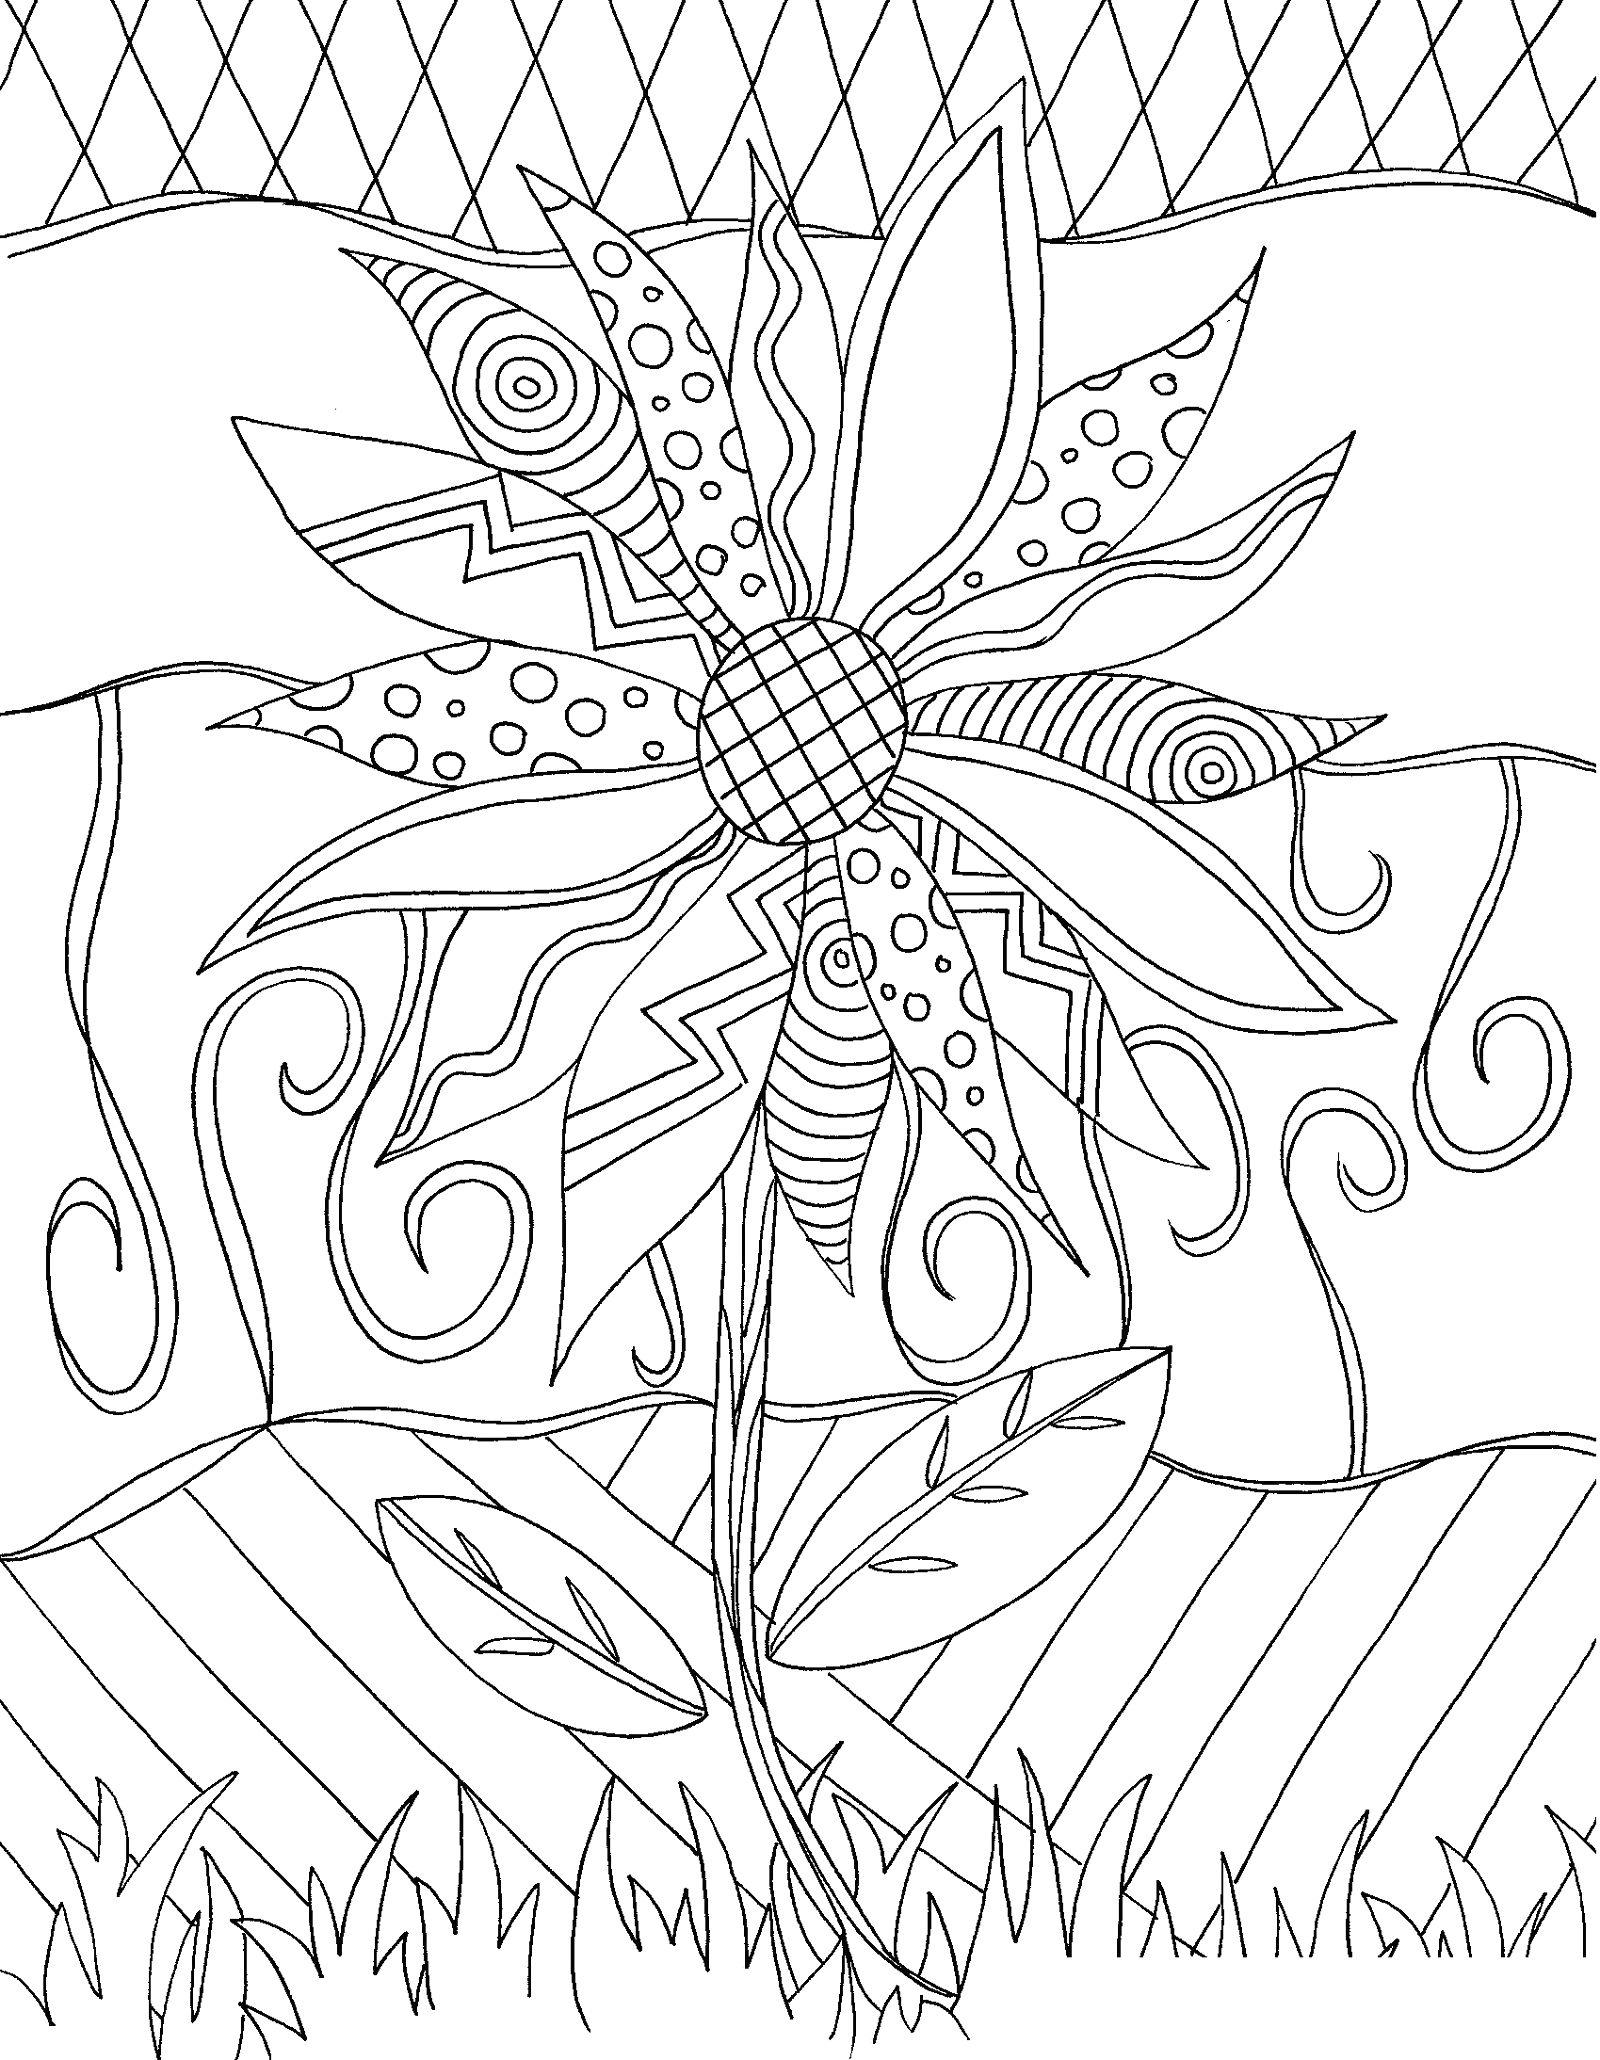 Free Printable Cool Coloring Pages for Adults Cool Coloring Pages for Adults